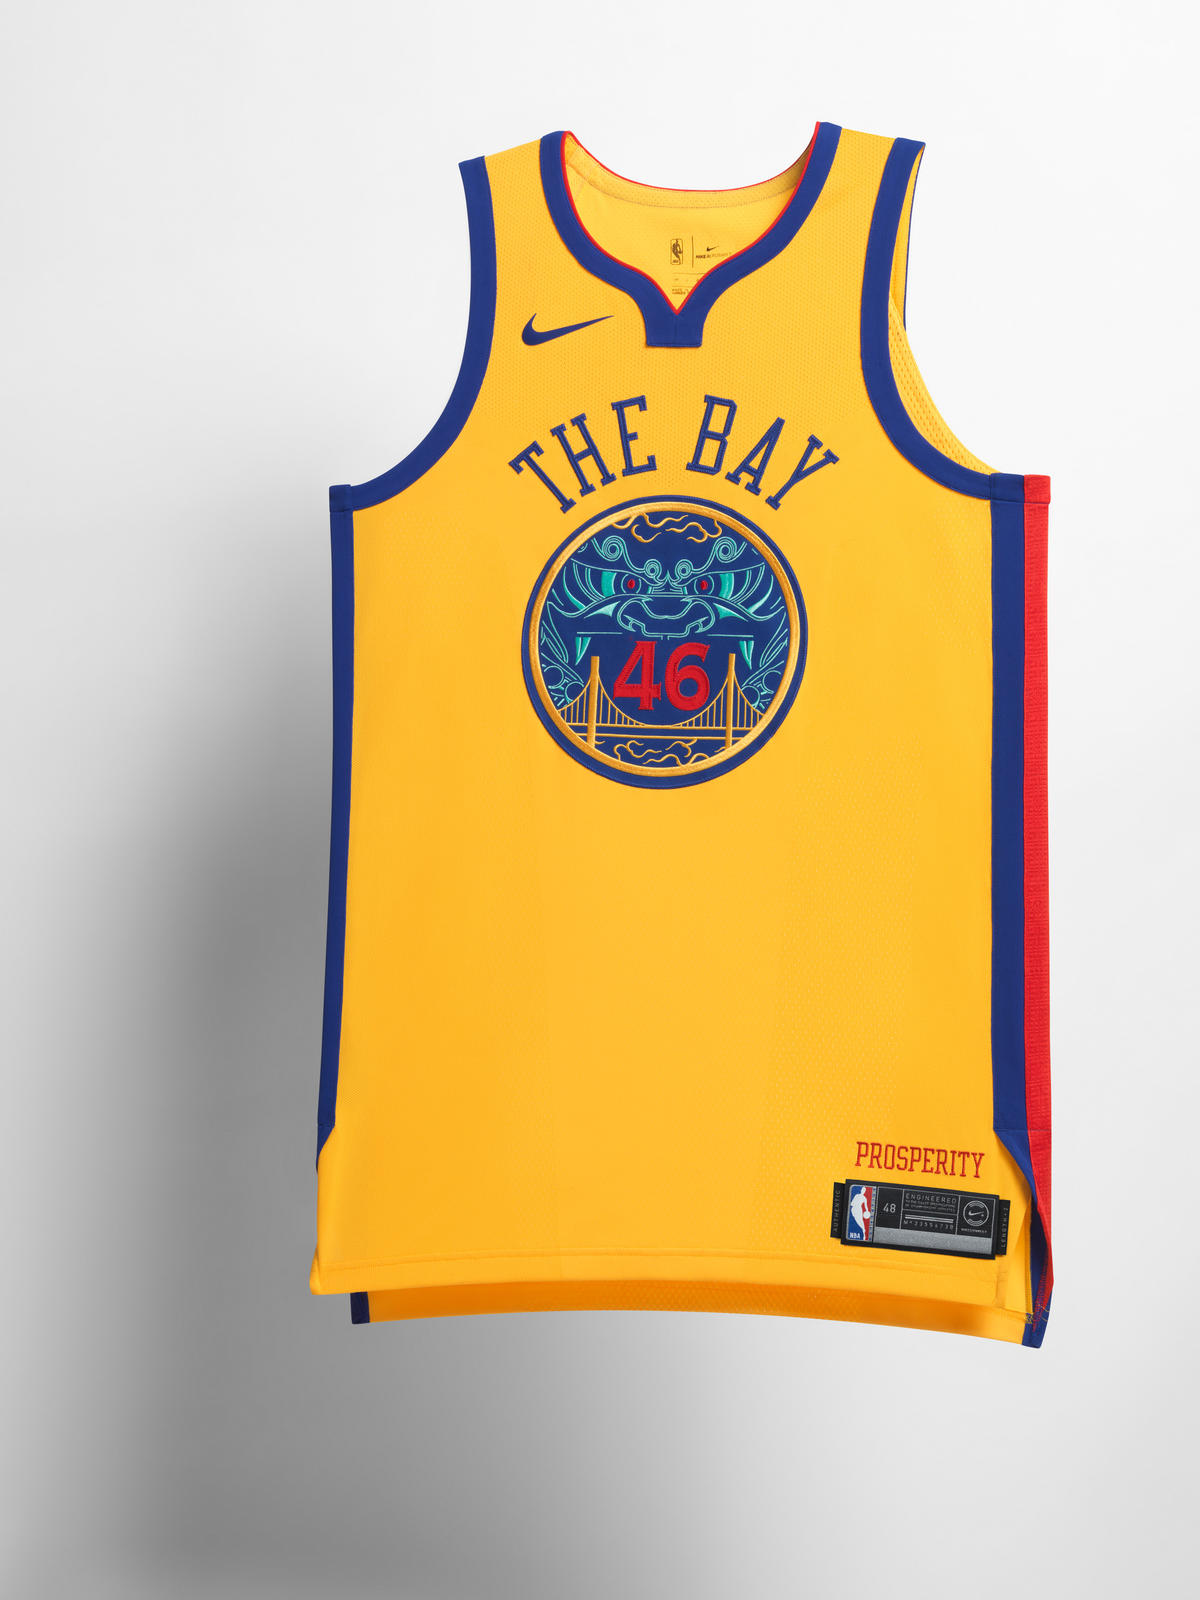 Nike_NBA_City_Edition_Uniform_Golden_State_Warriors_0067_native_1600